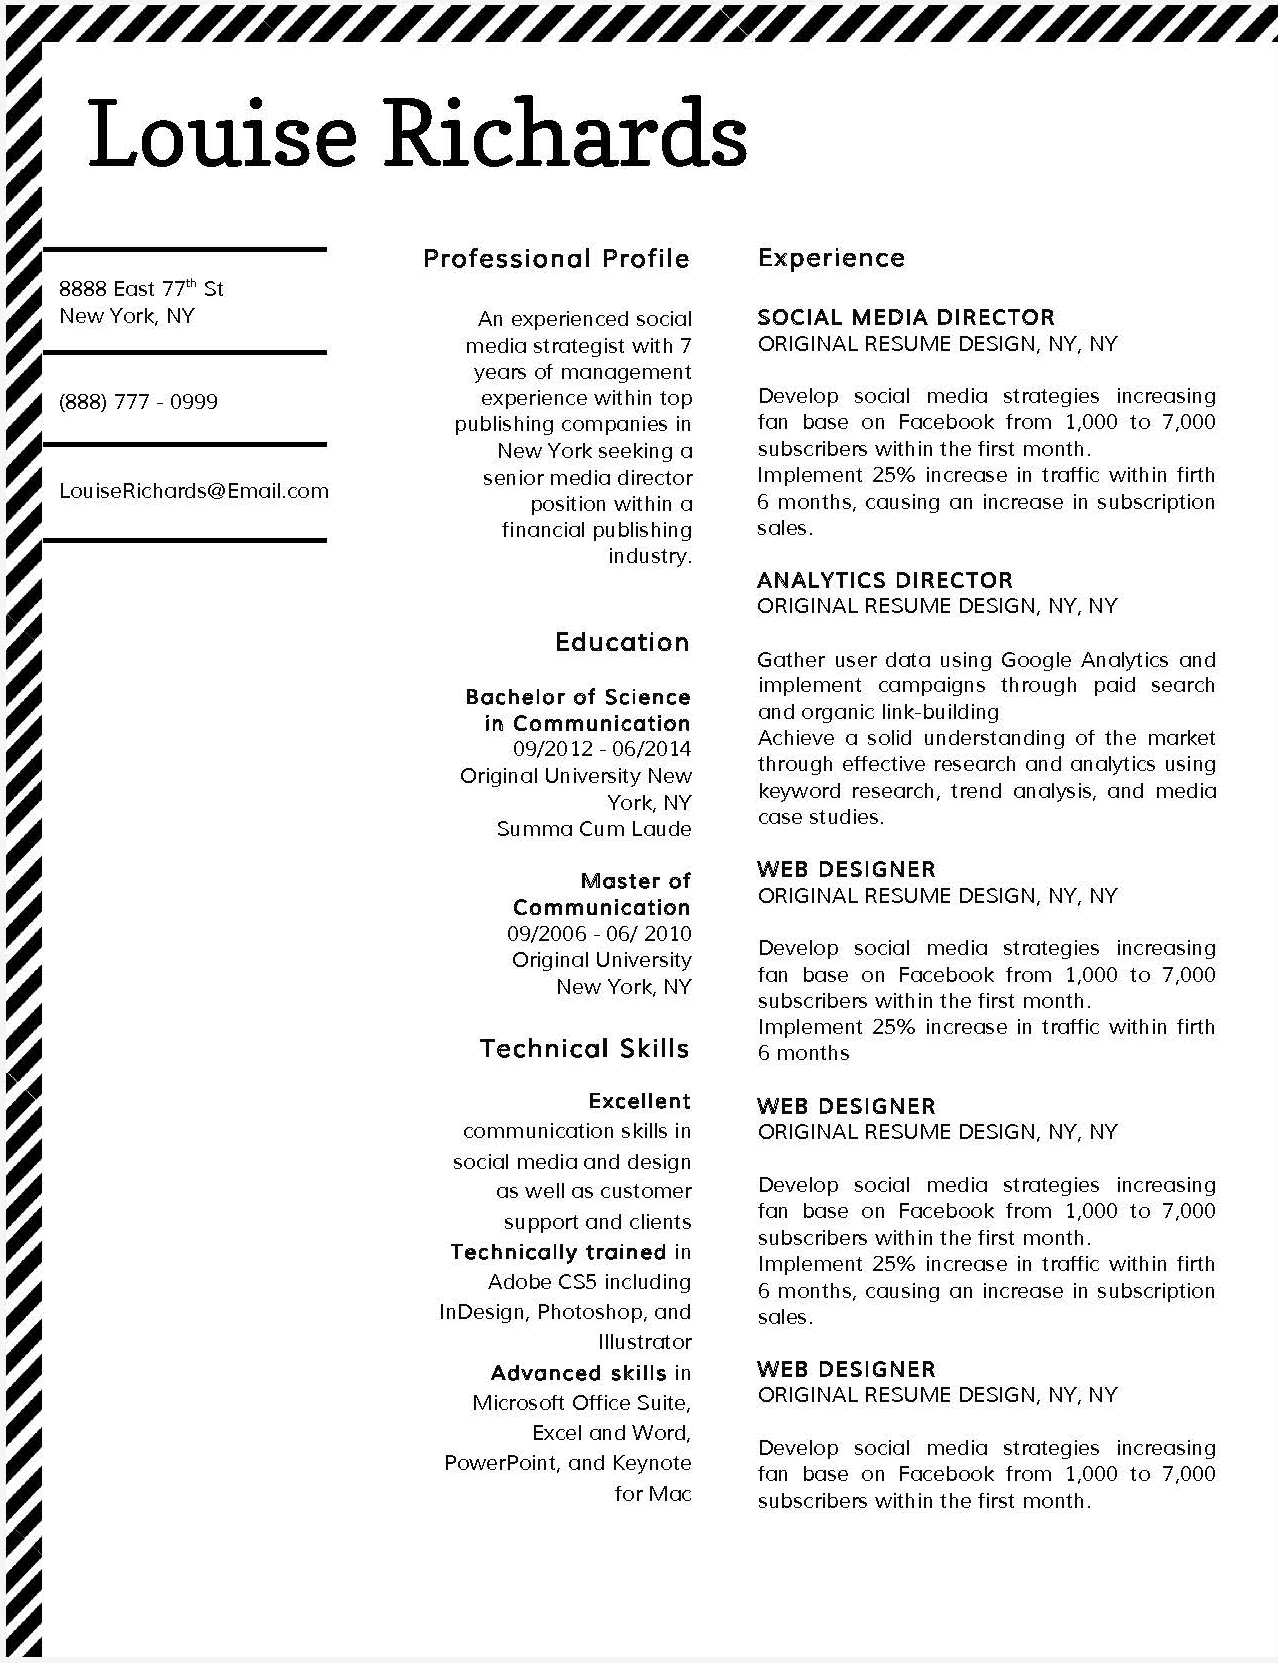 Louise Richards - Downloadable Resume Template and Cover Letter Template for Microsoft Word and Apple Pages